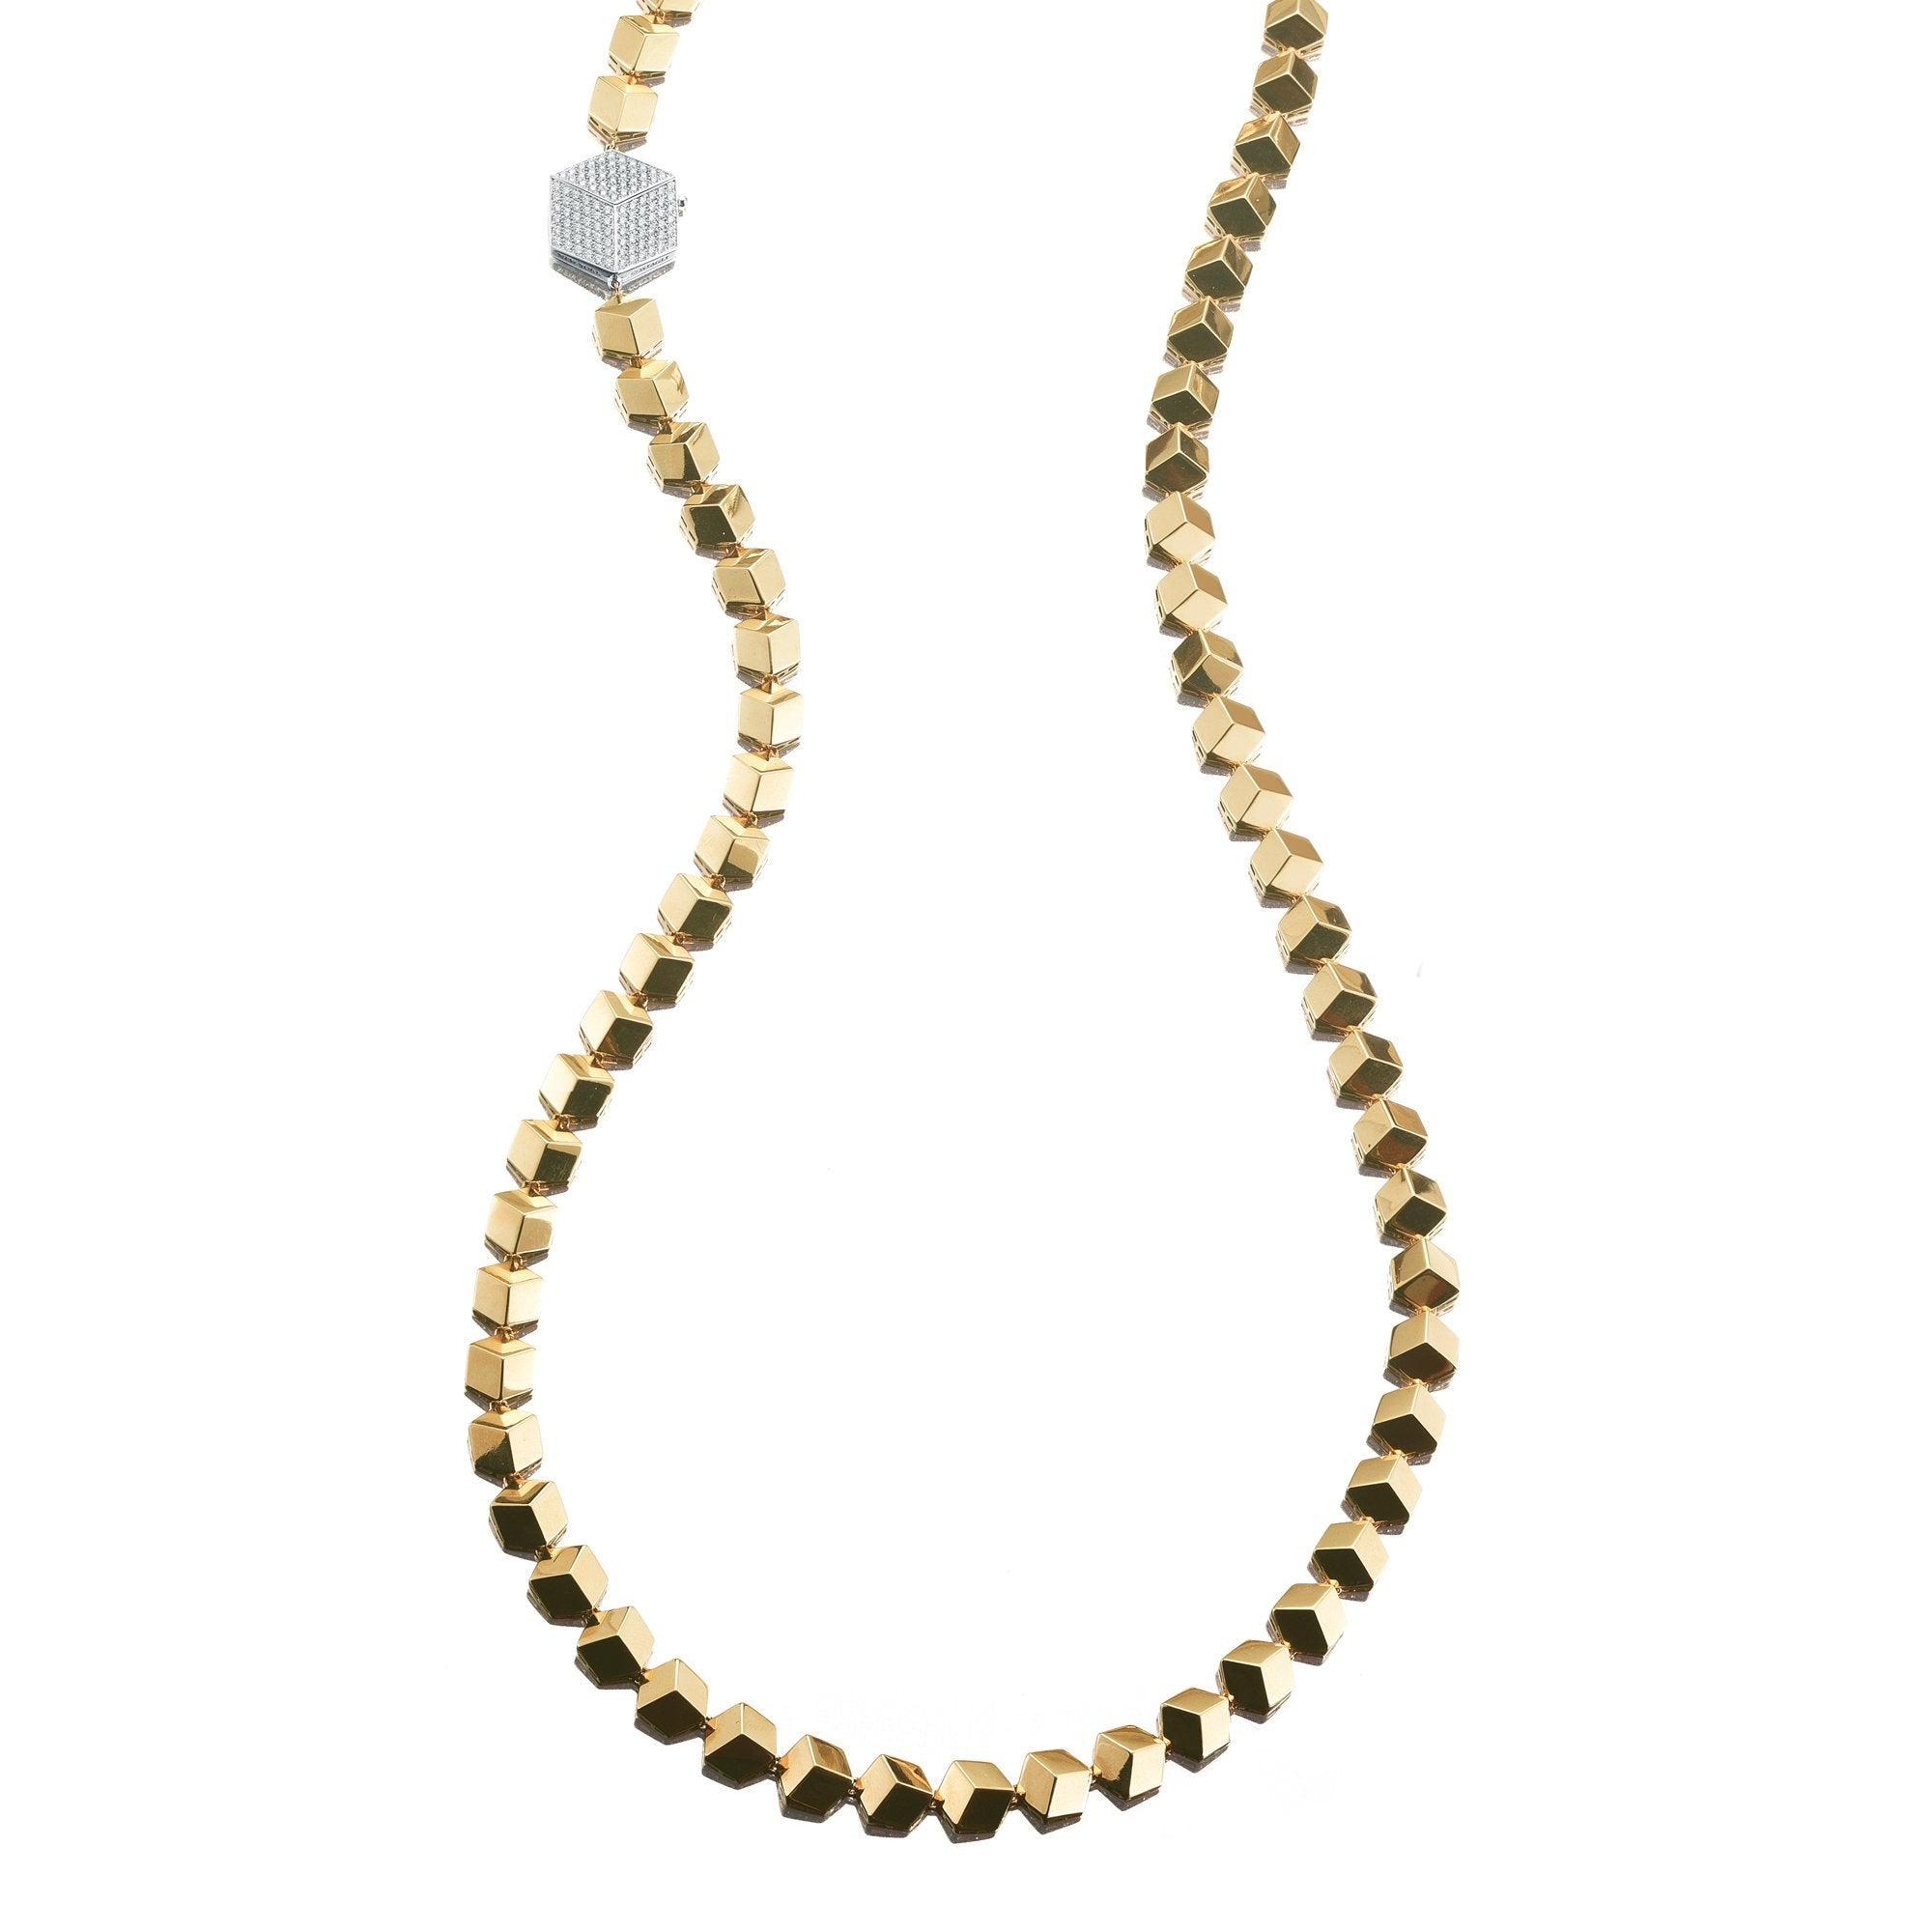 Yellow Gold 'Brillante®' Necklace, Grande - Paolo Costagli - 1